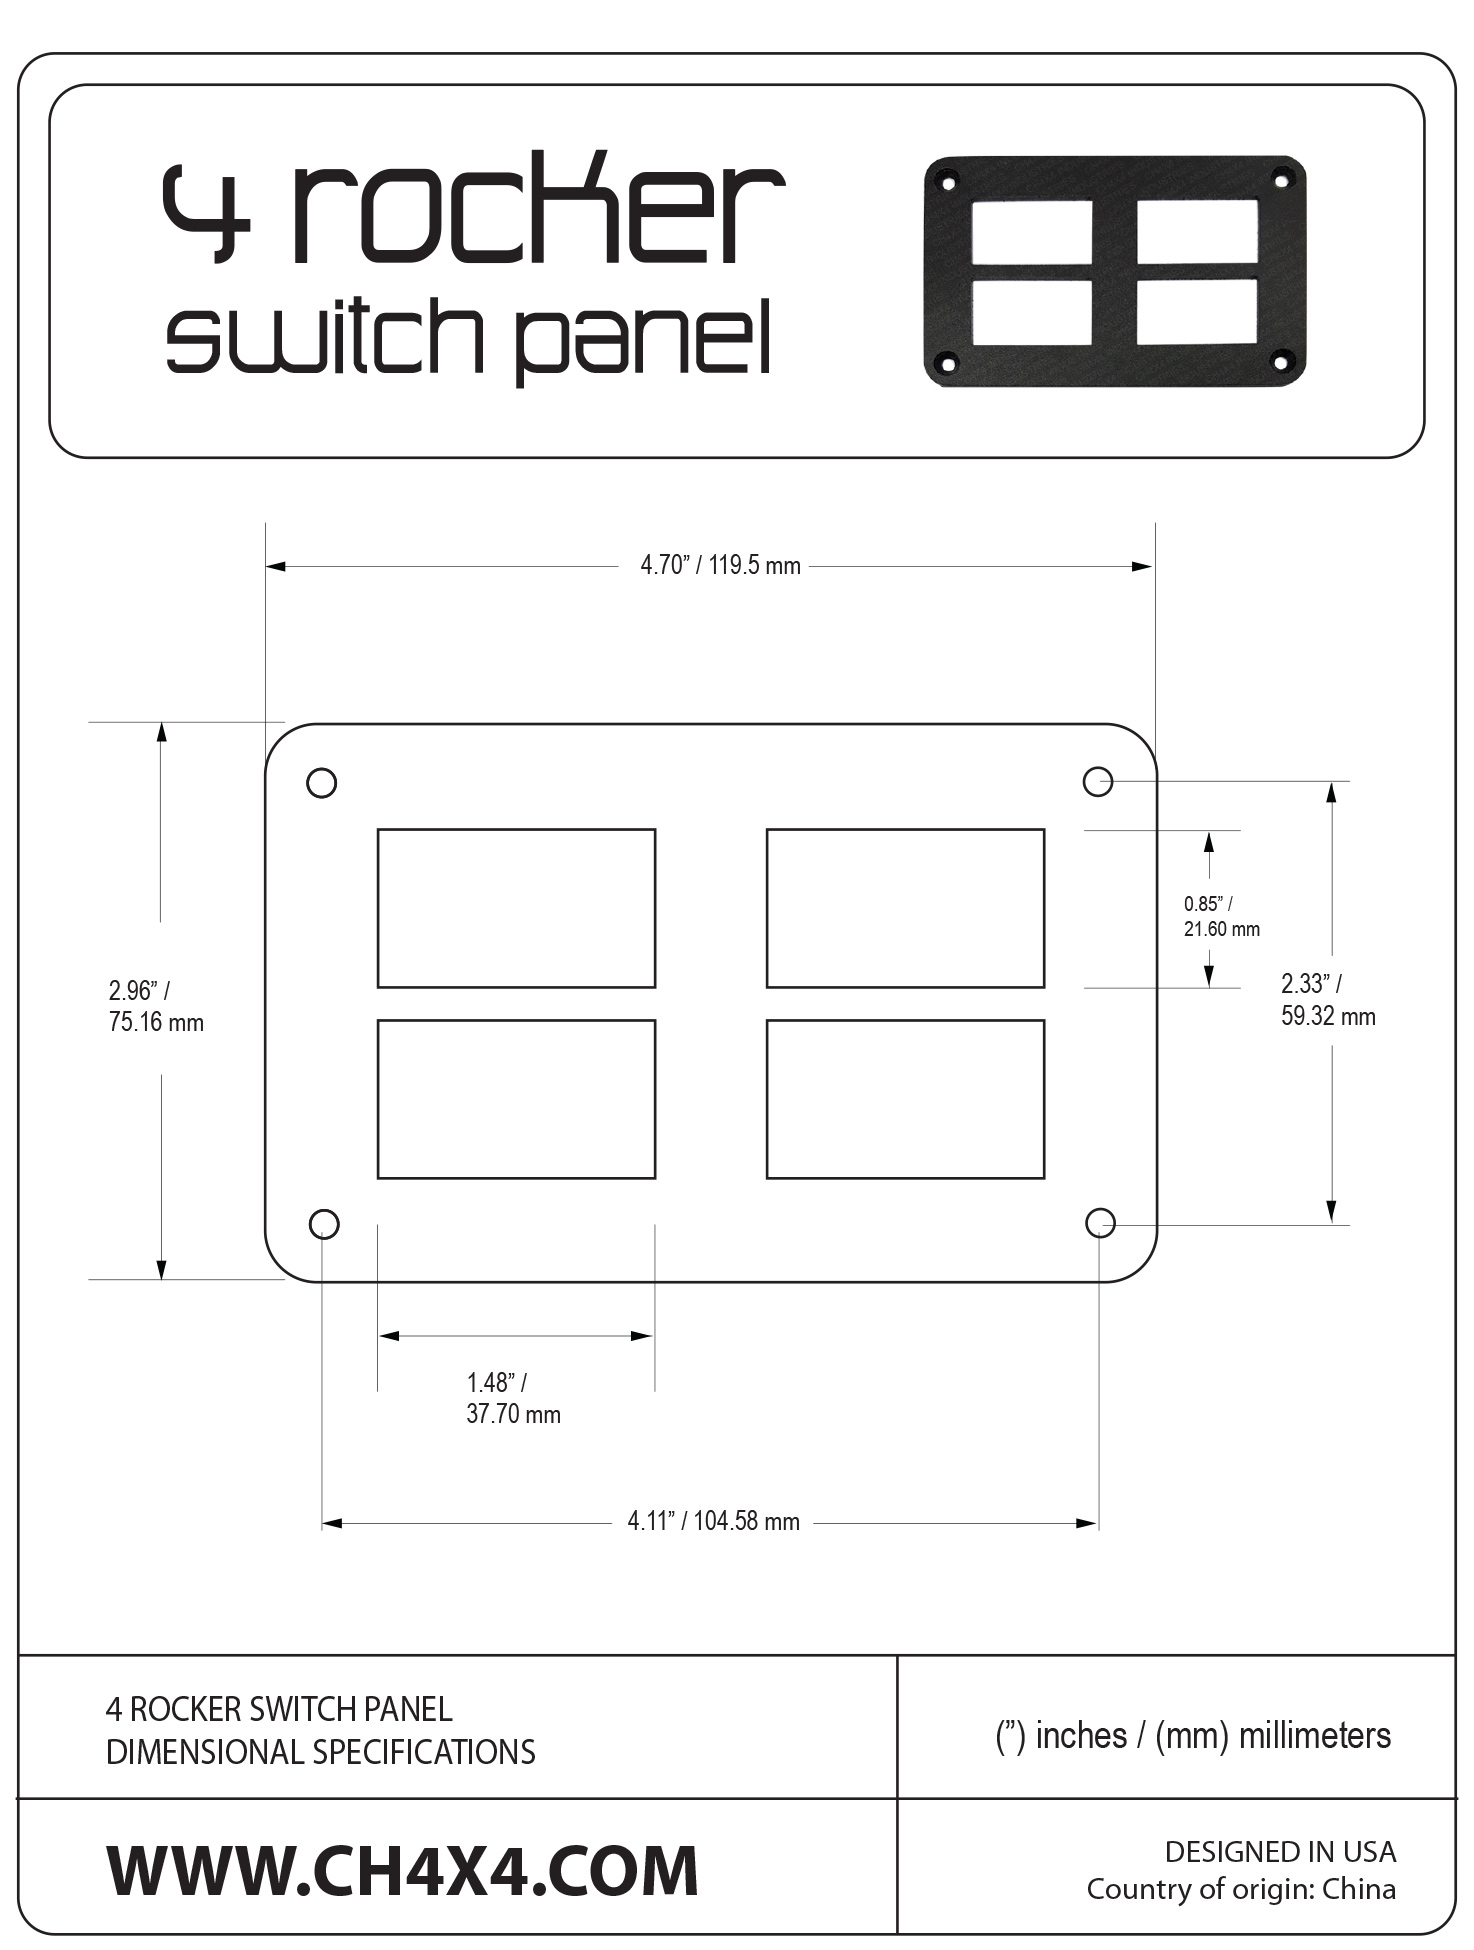 4-Rocket-Switch-Panel-Dimensional-Specifications-B